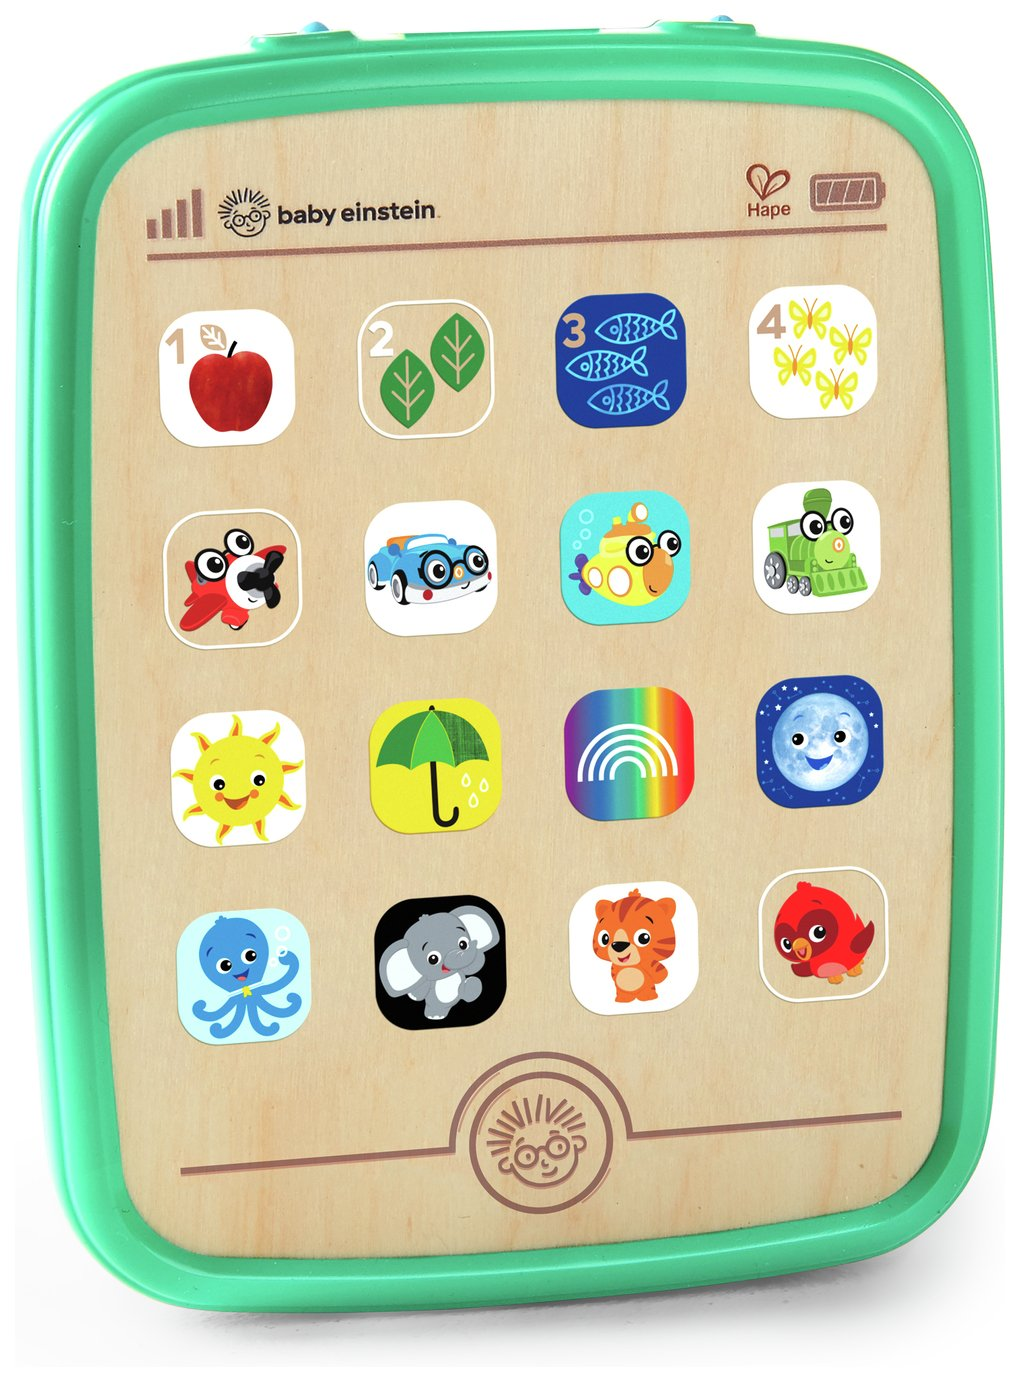 Baby Einstein Hape Magic Touch Tablet